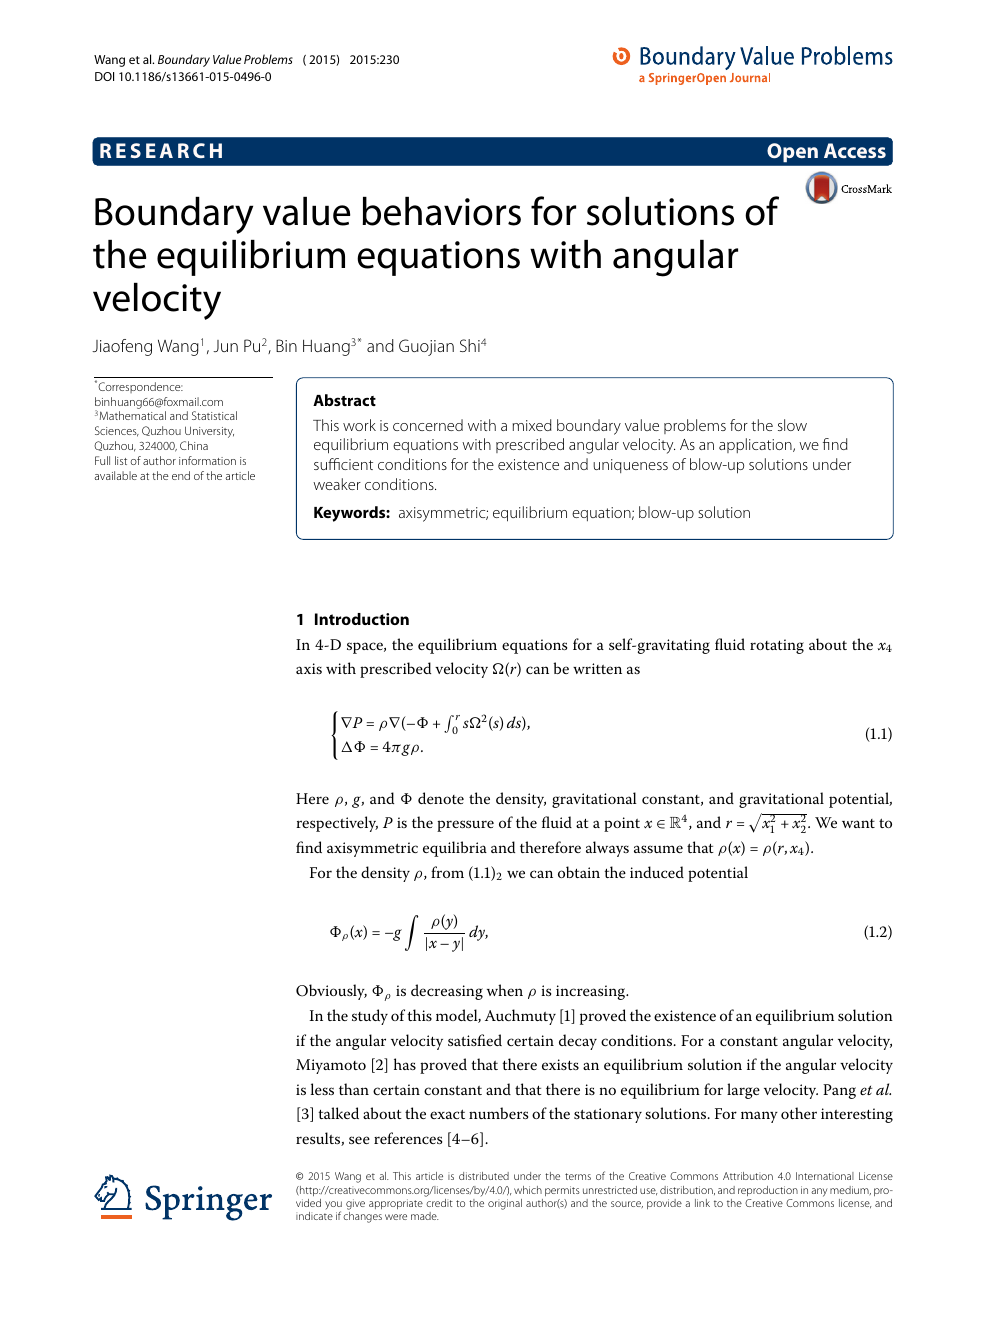 Boundary value behaviors for solutions of the equilibrium